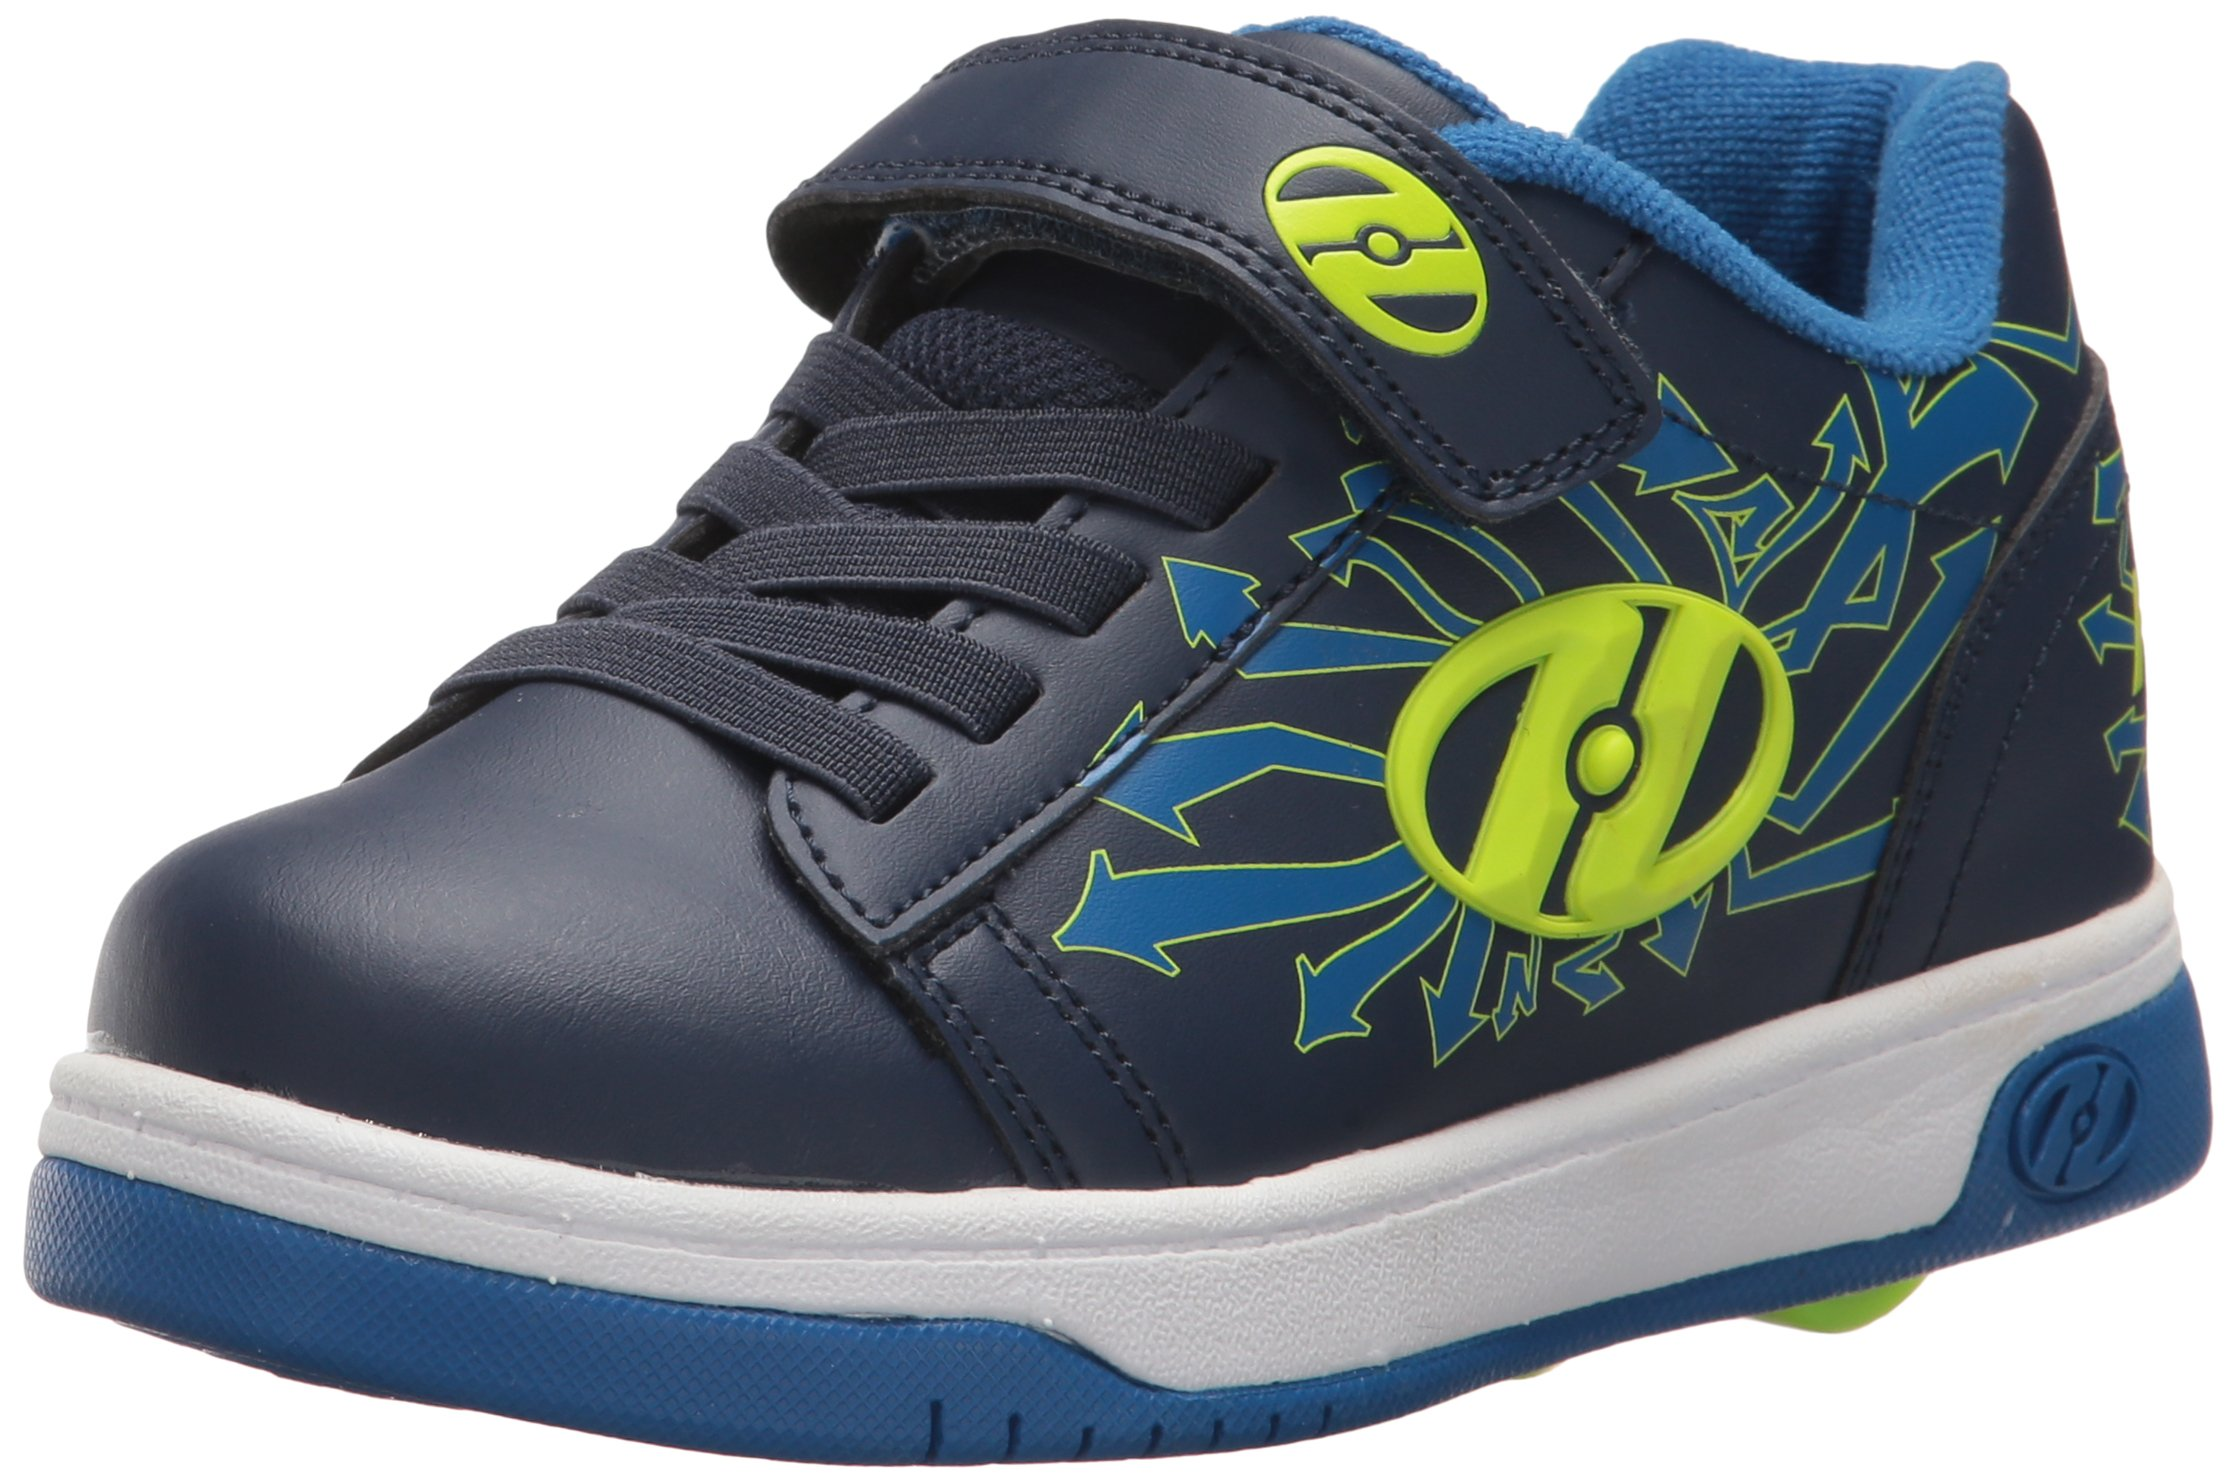 Heelys Boys' Dual up X 2 Sneaker, Navy/Blue/Arrows, 12 Medium US Little Kid